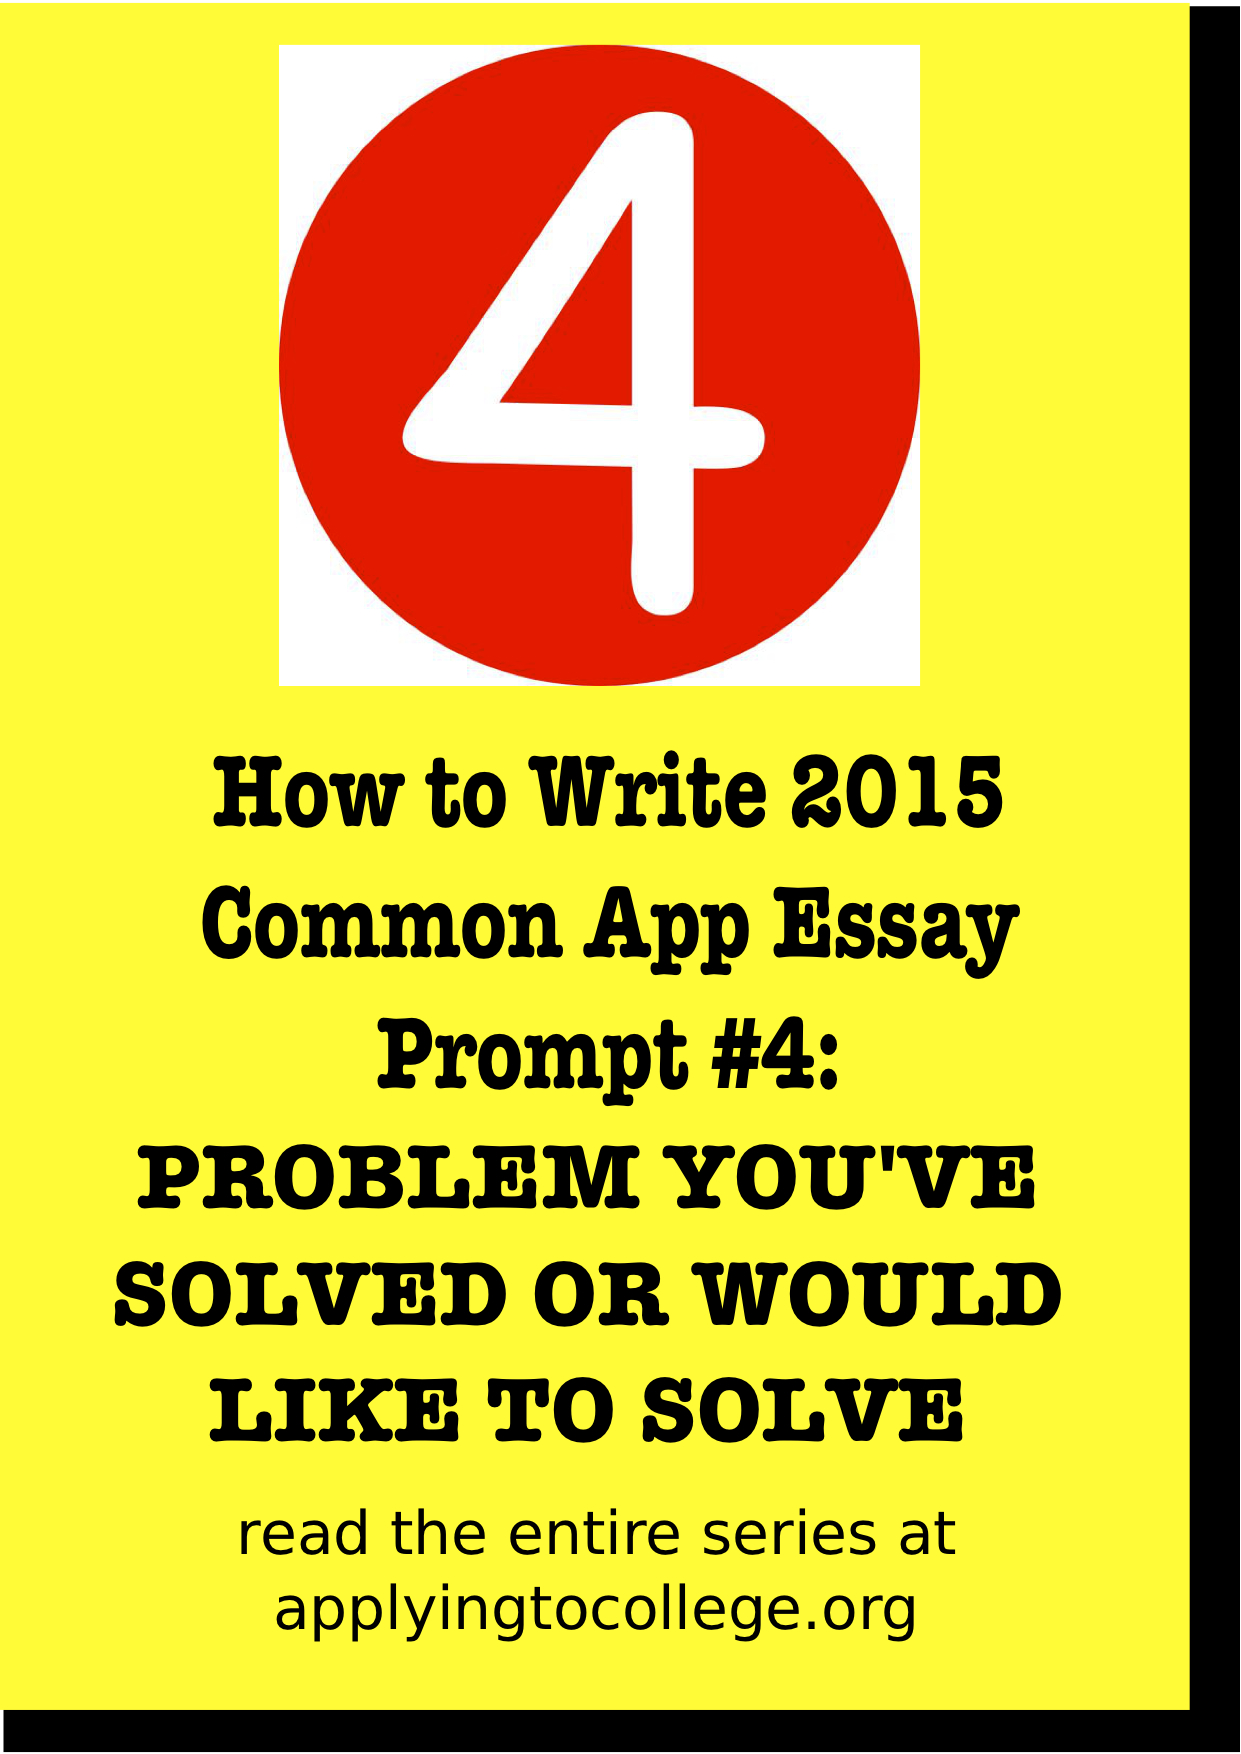 how to write common app essay describe a problem you ve solved how to write 2015 common app essay 4 problem you ve solved or would like to solve